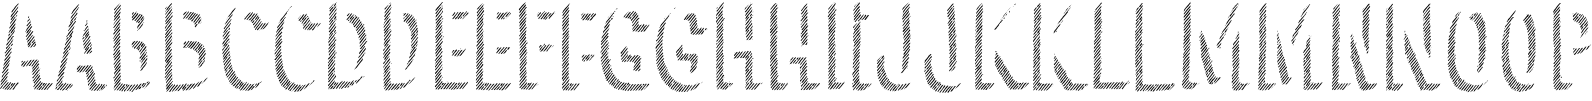 Cluster Shadow 123 Font